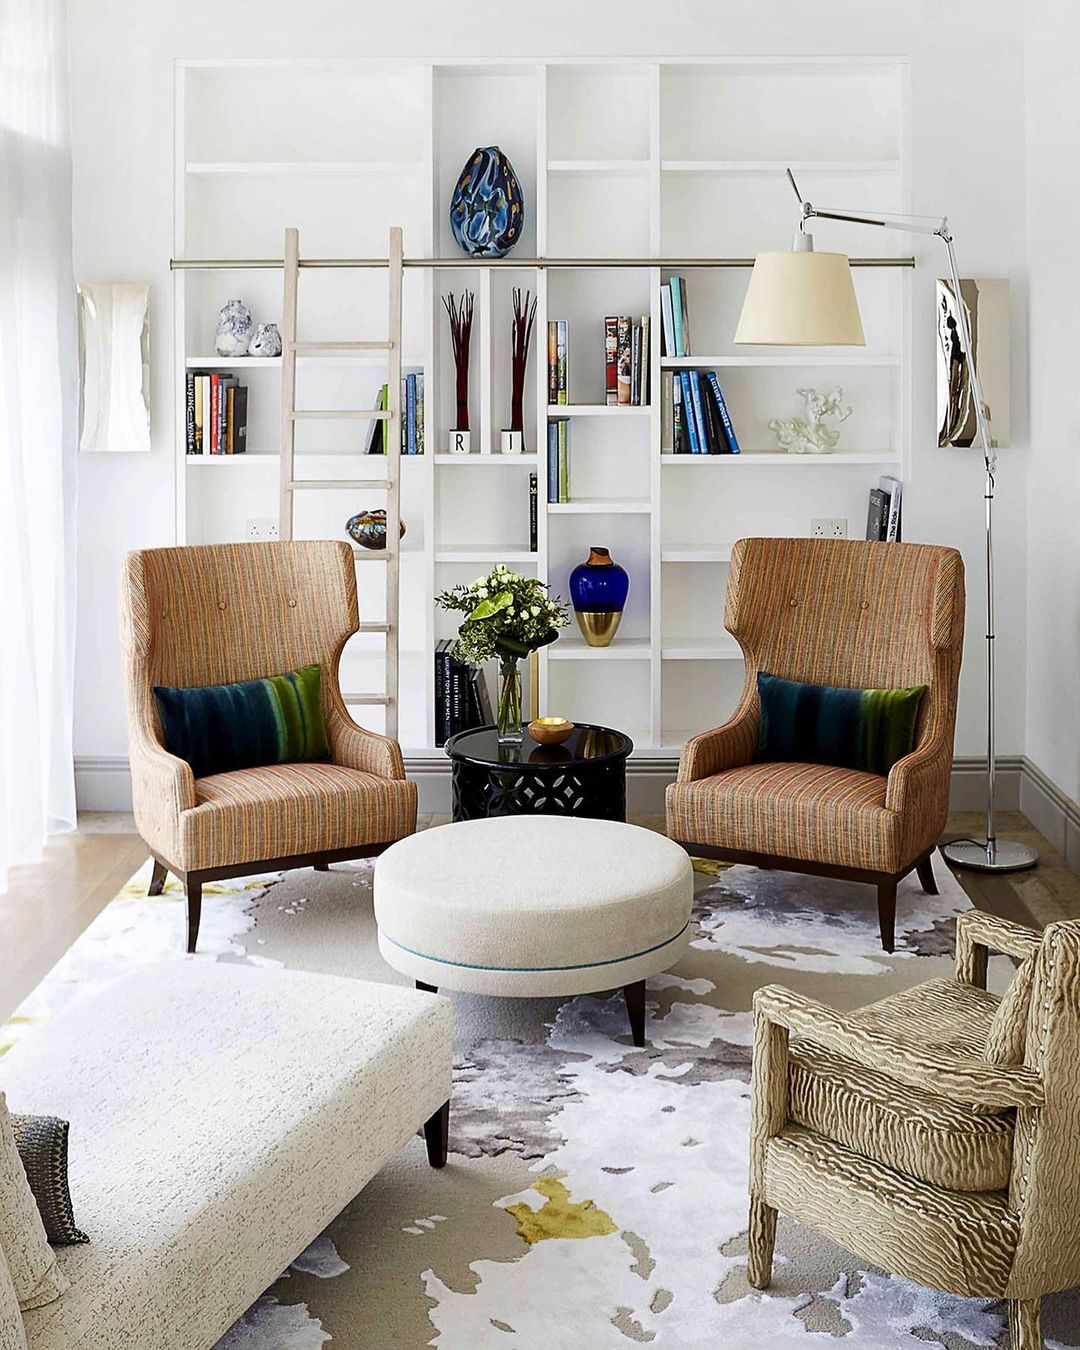 The Soft & Creamy Armchairs in a contemp...